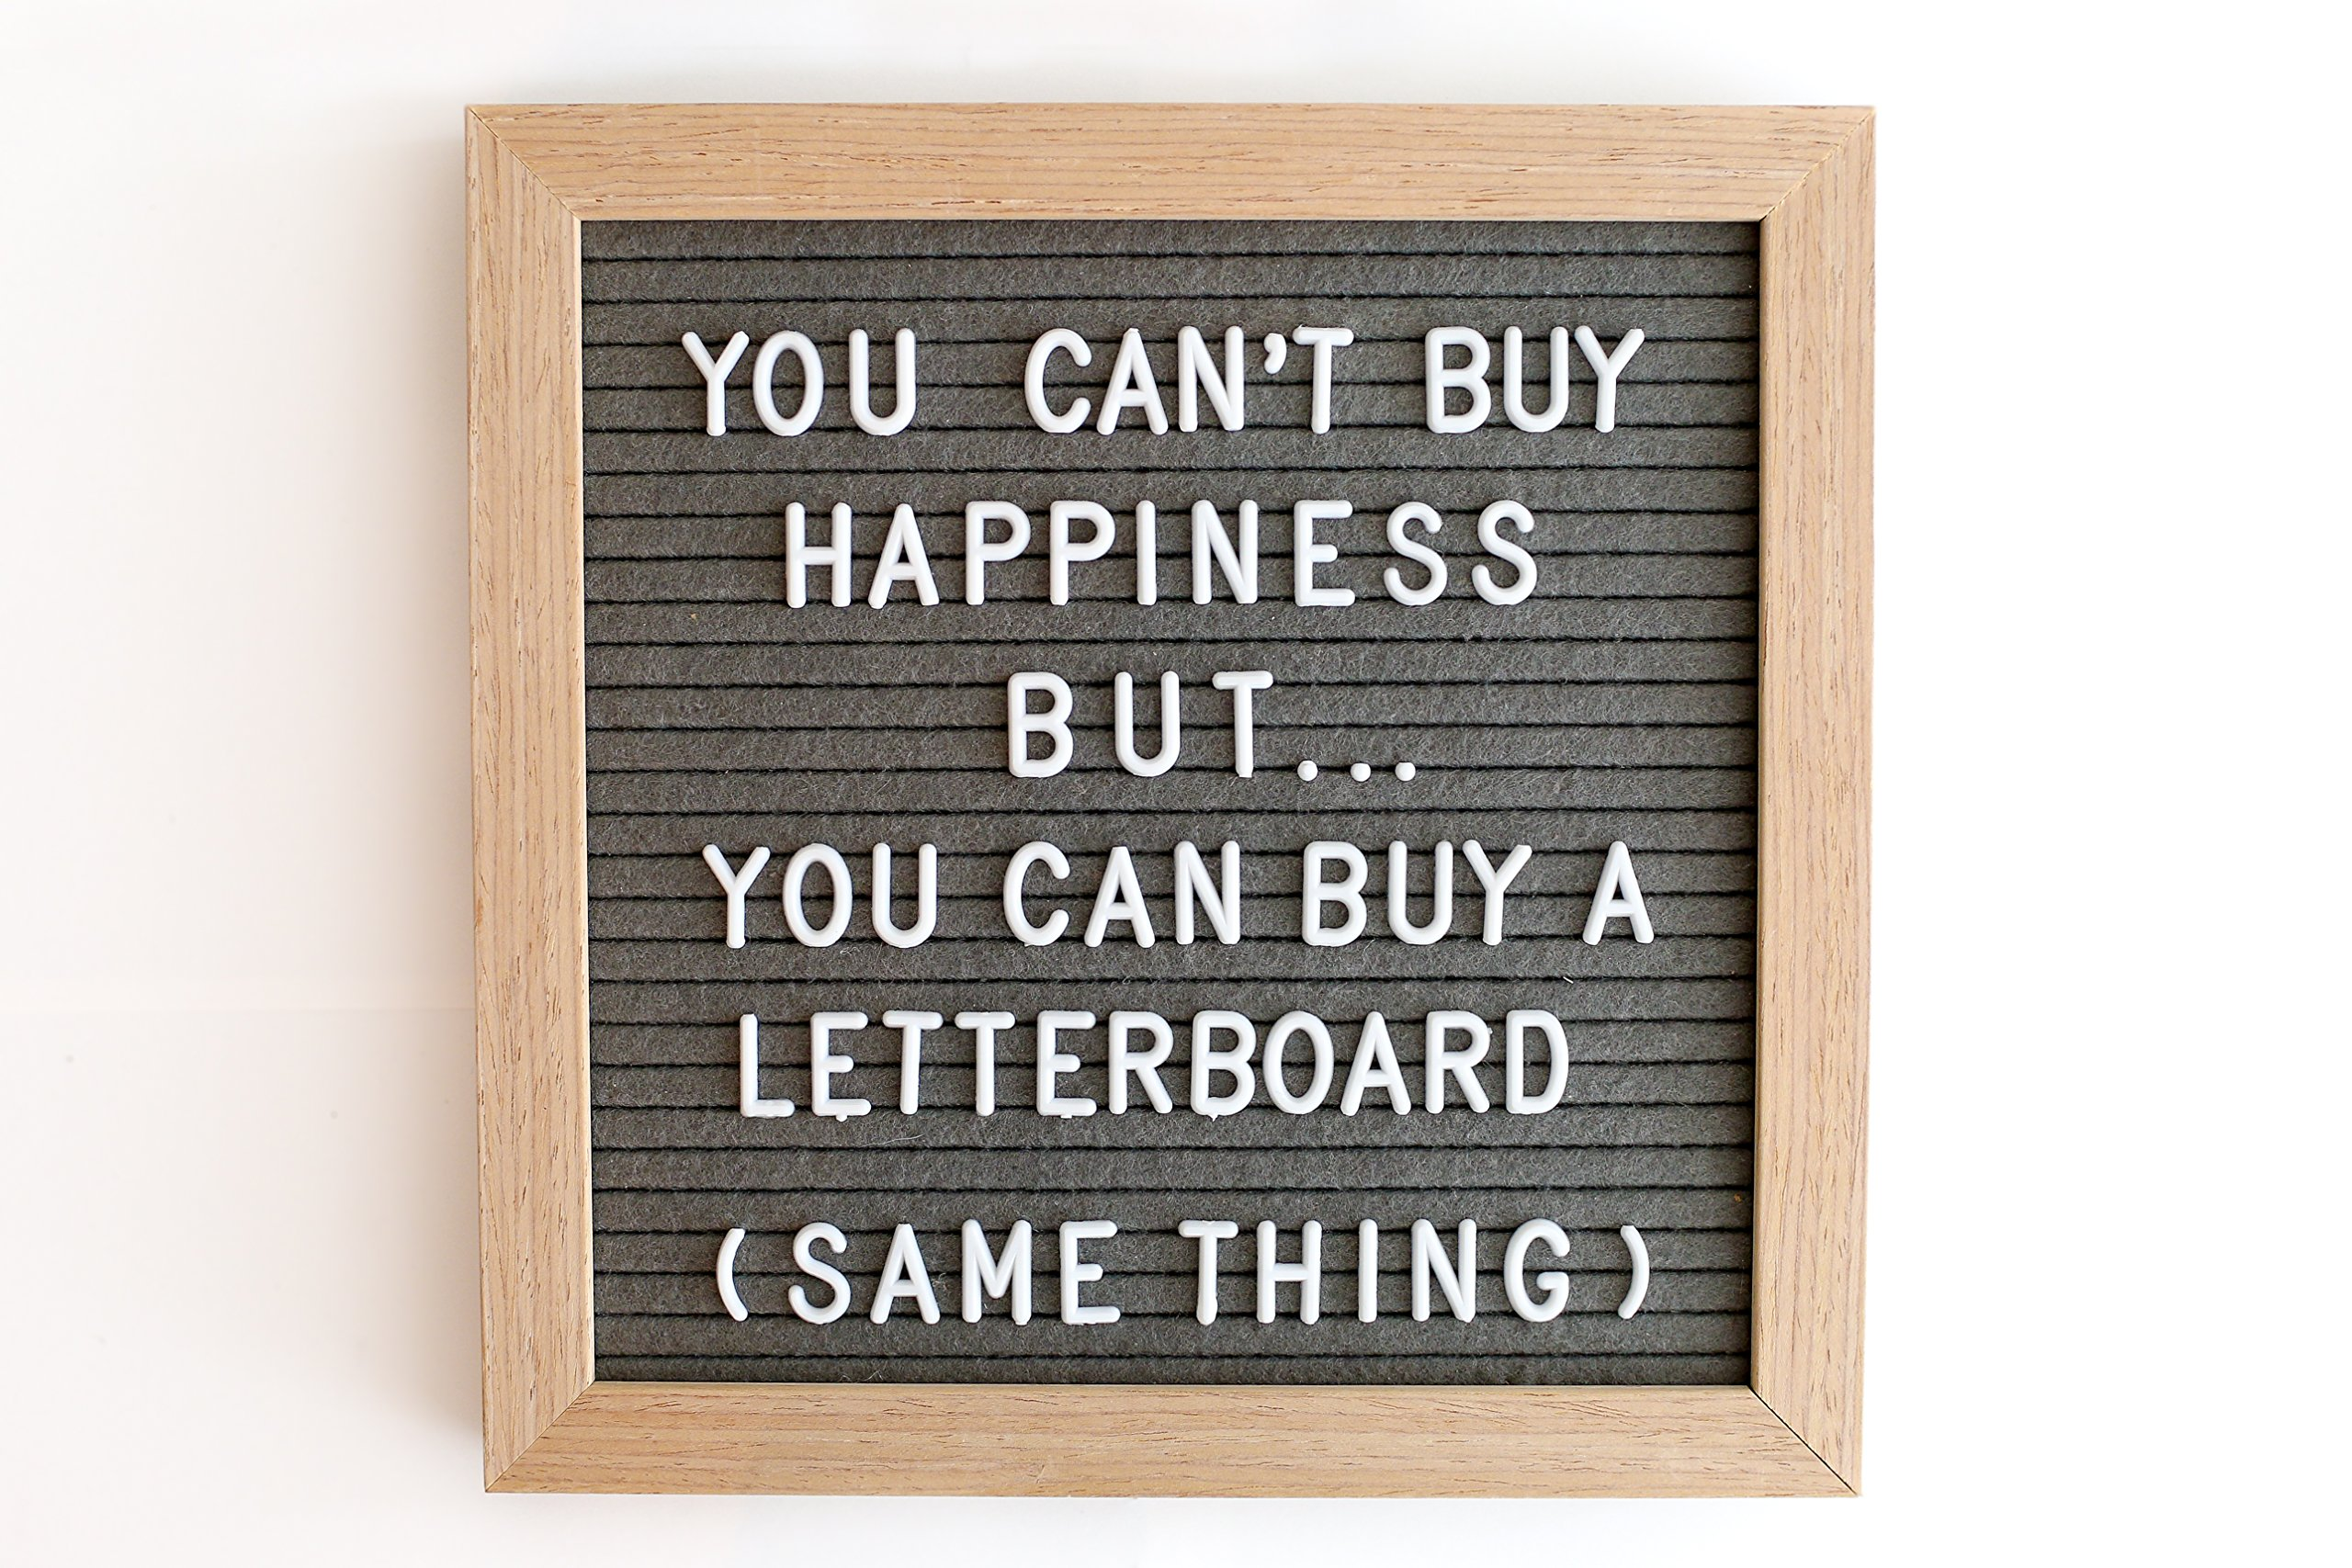 Gray Changeable Felt Letter Board | Message Board | 10 X 10 inches | 339 PRE-Cut Letters, Numbers and Symbols | Oak Wood Frame | Restaurant Sign | Wall Hanging Hook and Wooden Stand